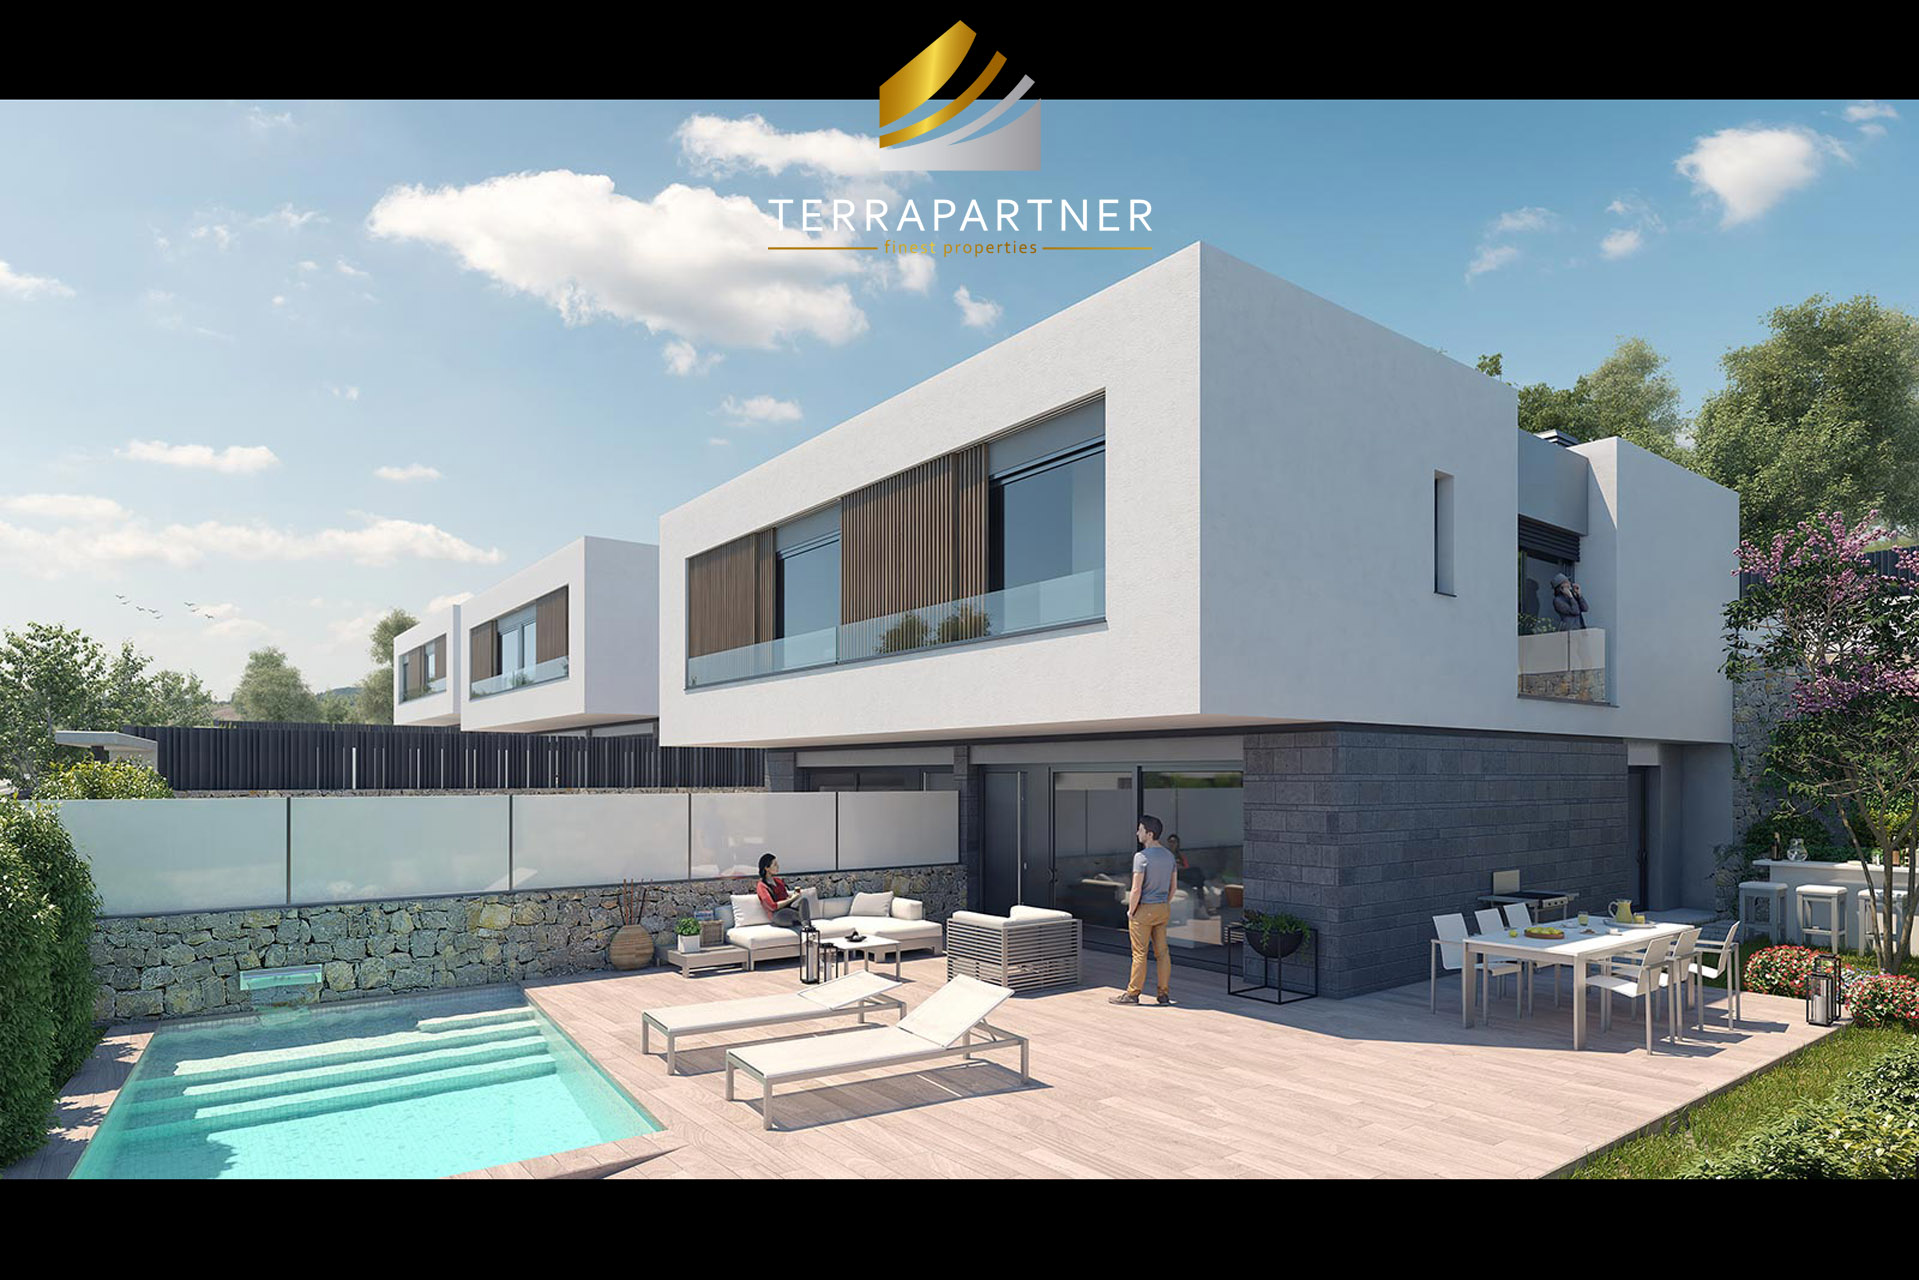 Design Townhouses with luxury amenities in sought after location